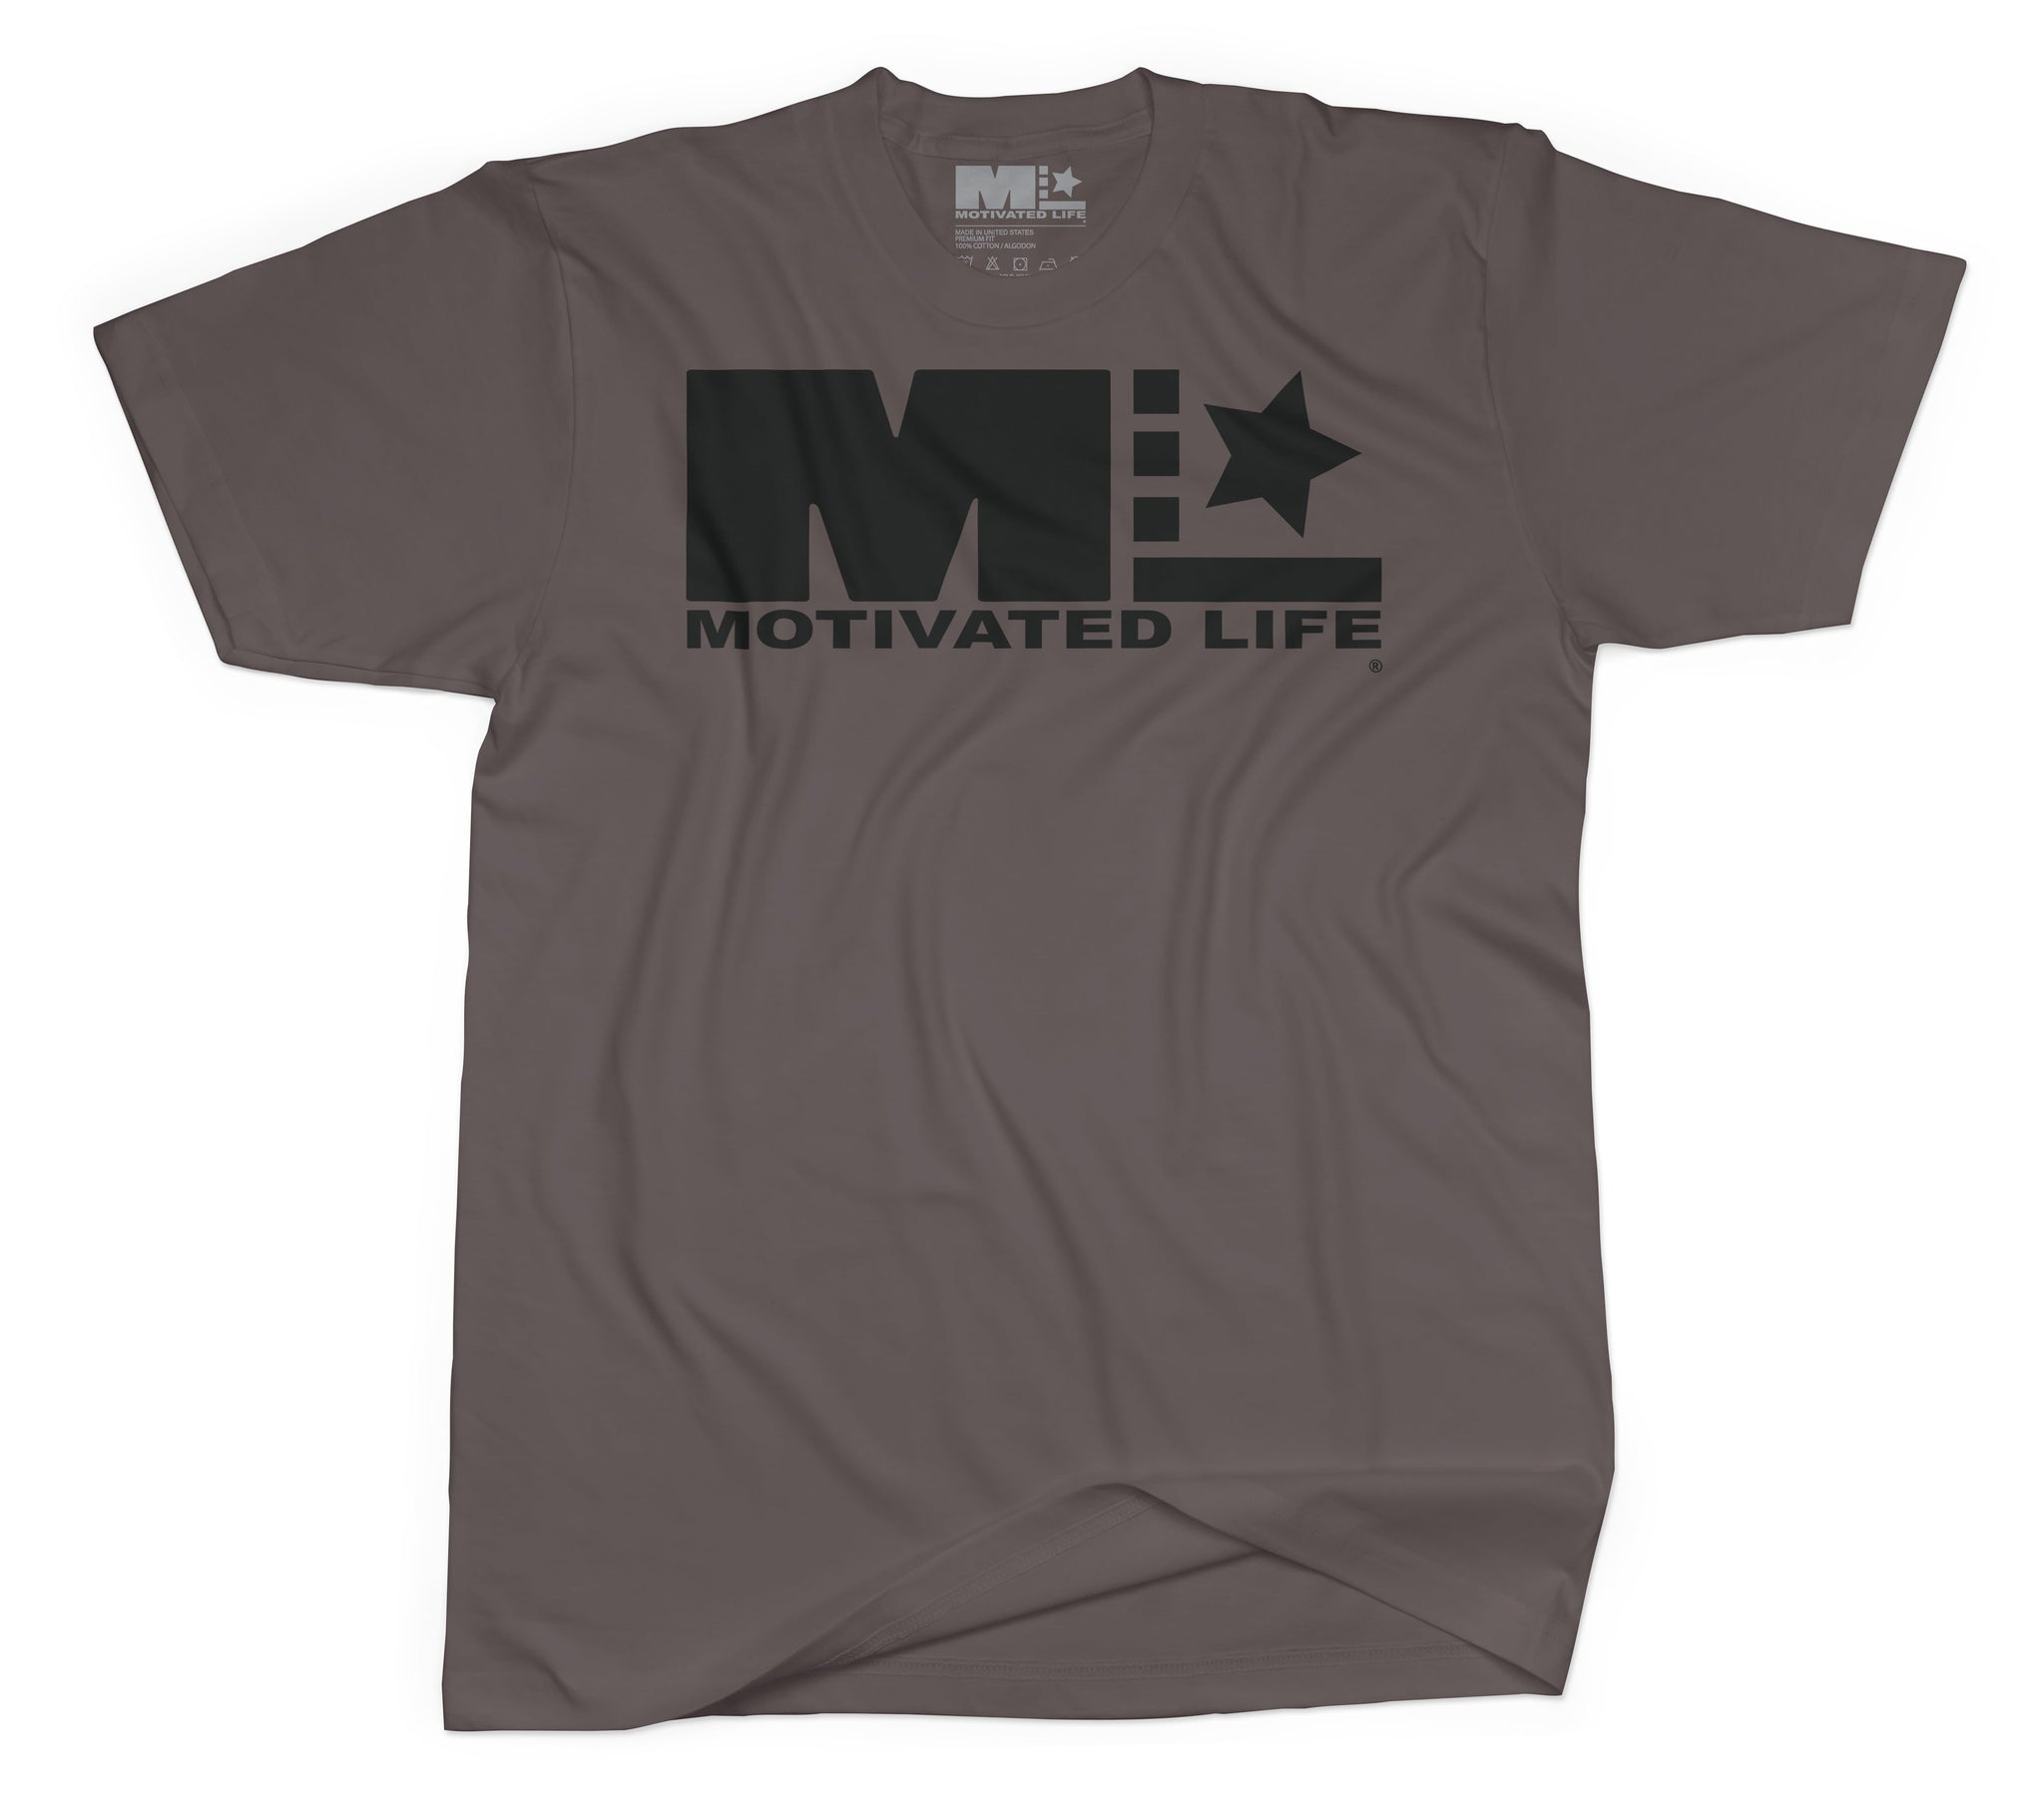 Motivated Life - Unisex Signature Tee - Black on Army Brown